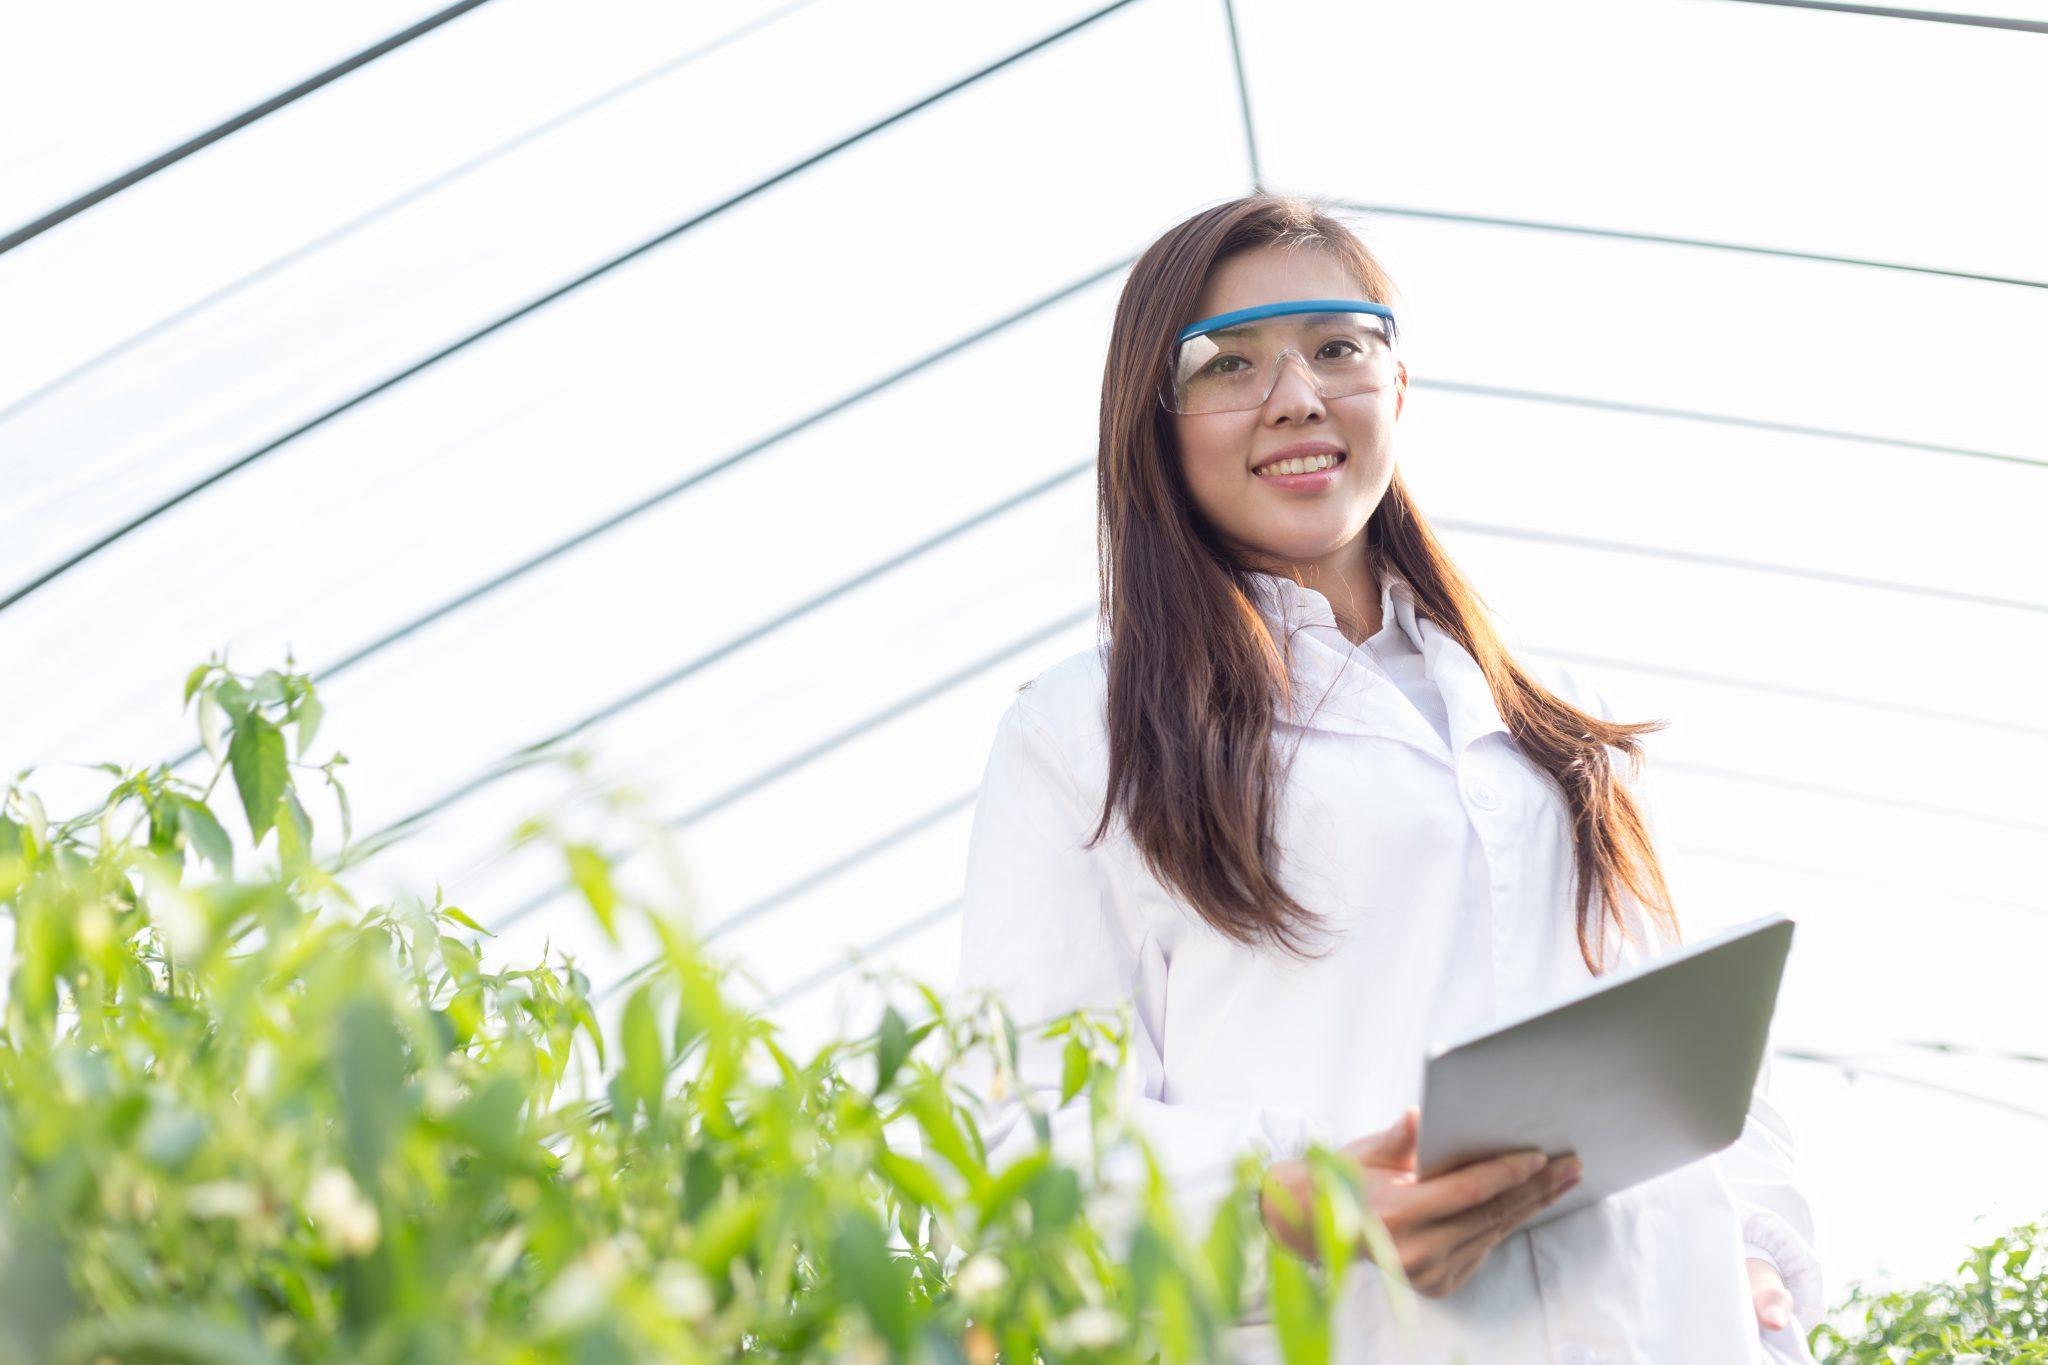 Agriculture scientist standing in a greenhousewith young bioengineered plants. Stock image byzhudifeng.